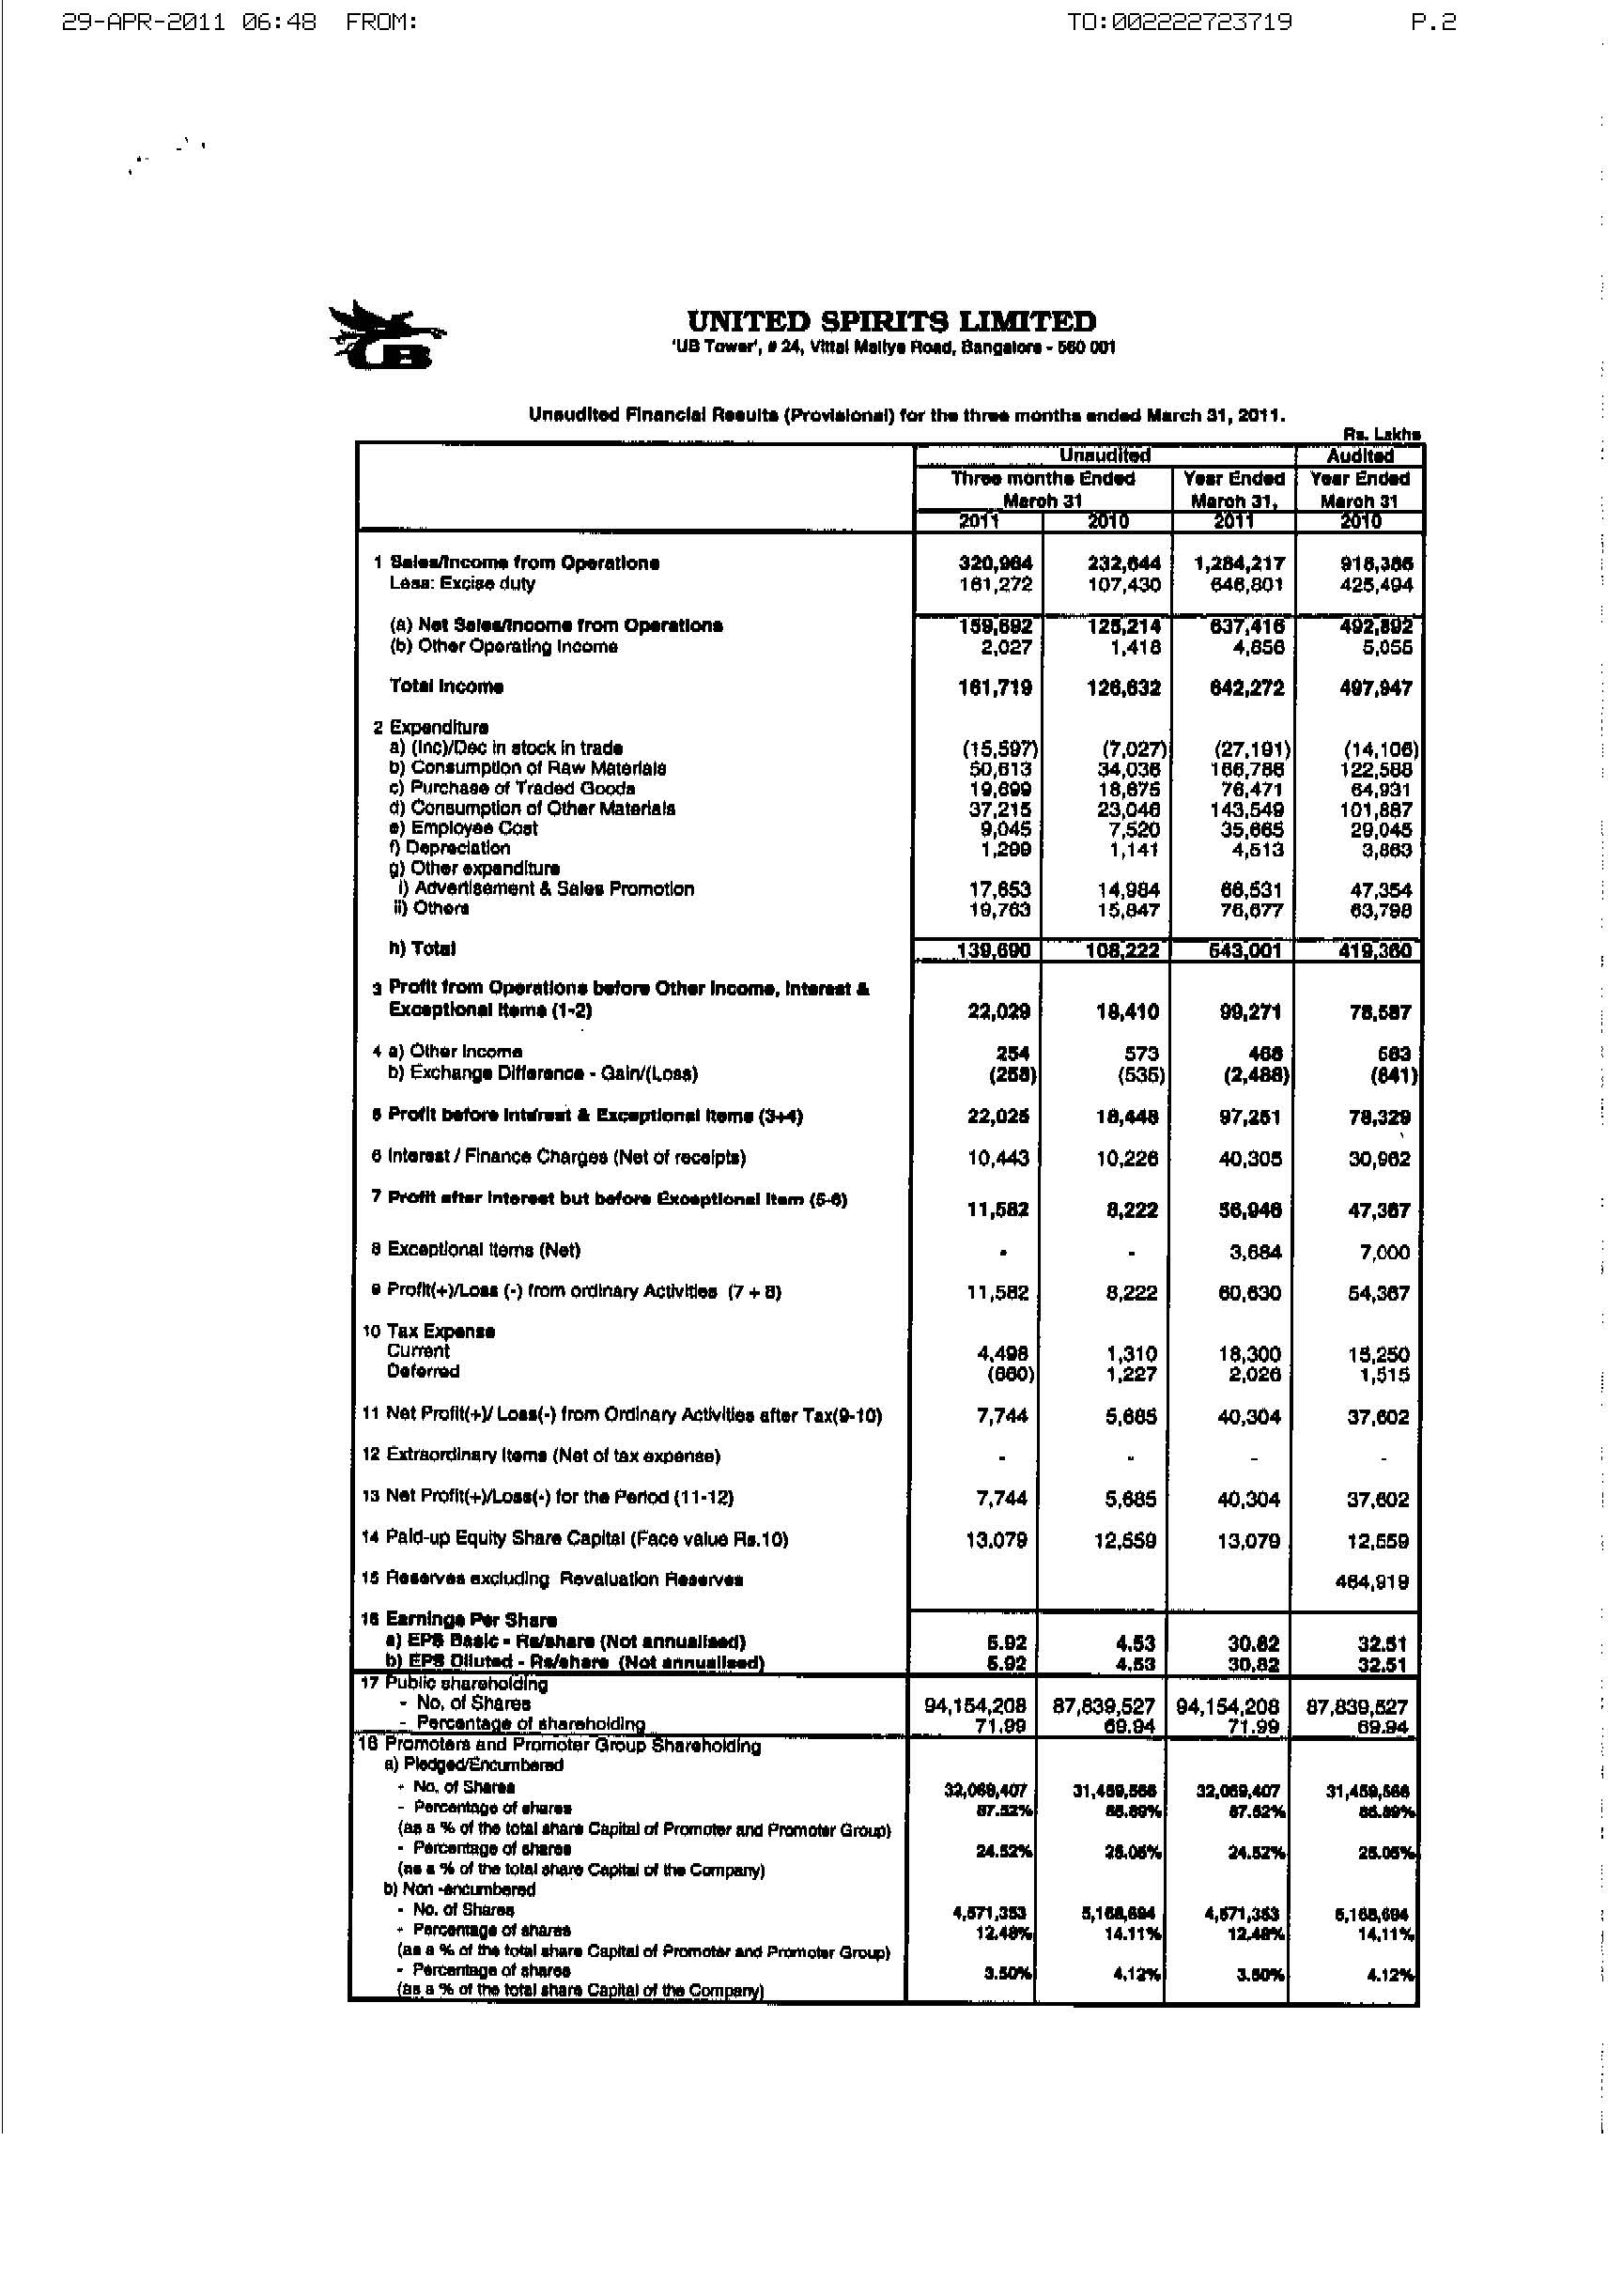 Unaudited Financial Results (Provisional) for the three months ended March 31, 2011